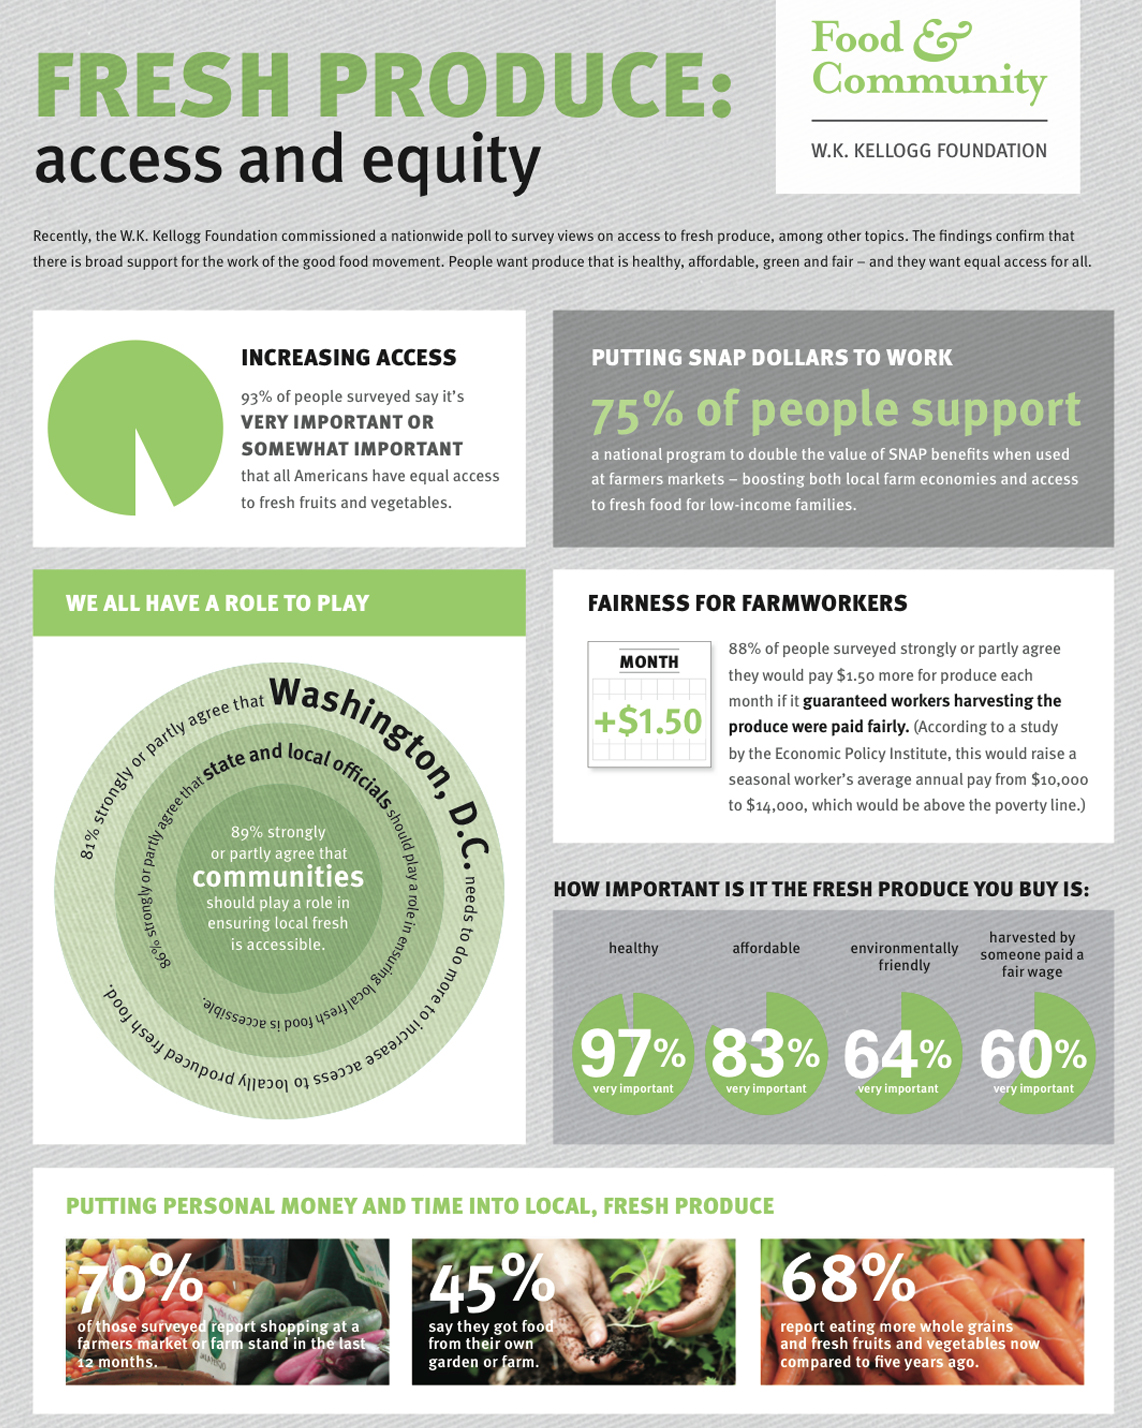 Infographic summary of poll results: Americans overwhelmingly support doubling food stamp value at farmers markets - W.K. Kellogg Foundation